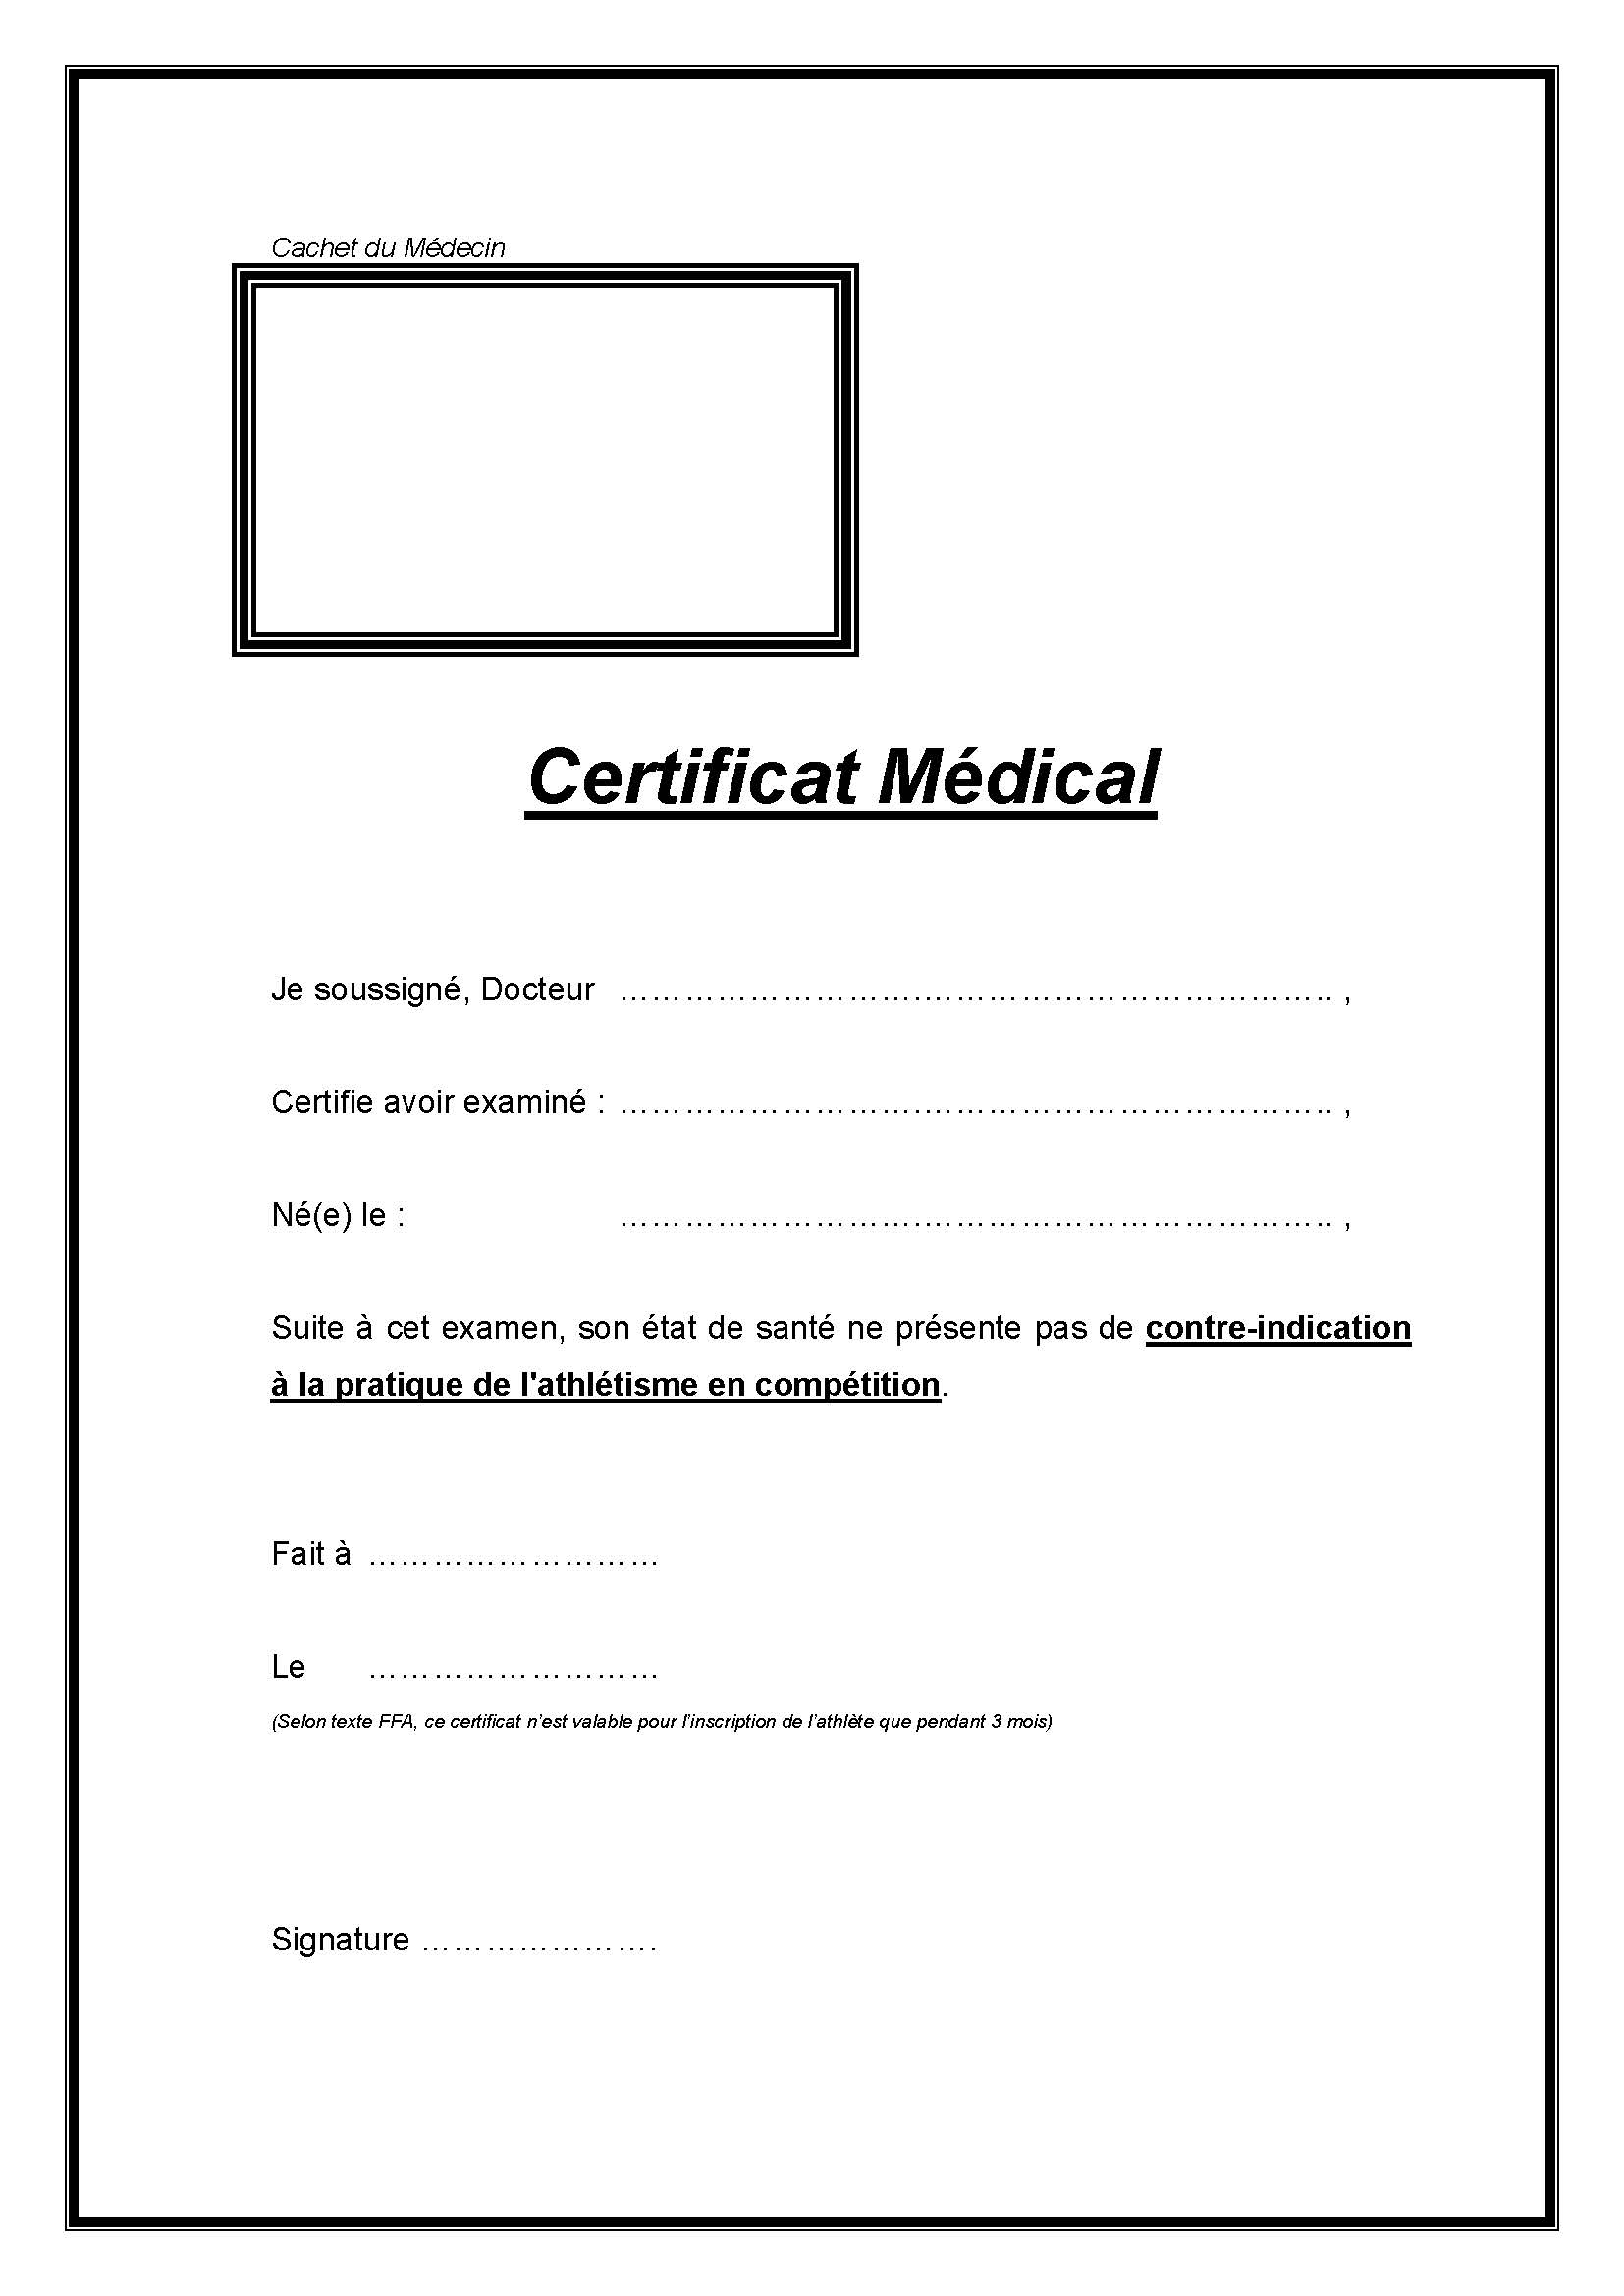 Modele attestation medicale document online for Modele certificat de ramonage gratuit